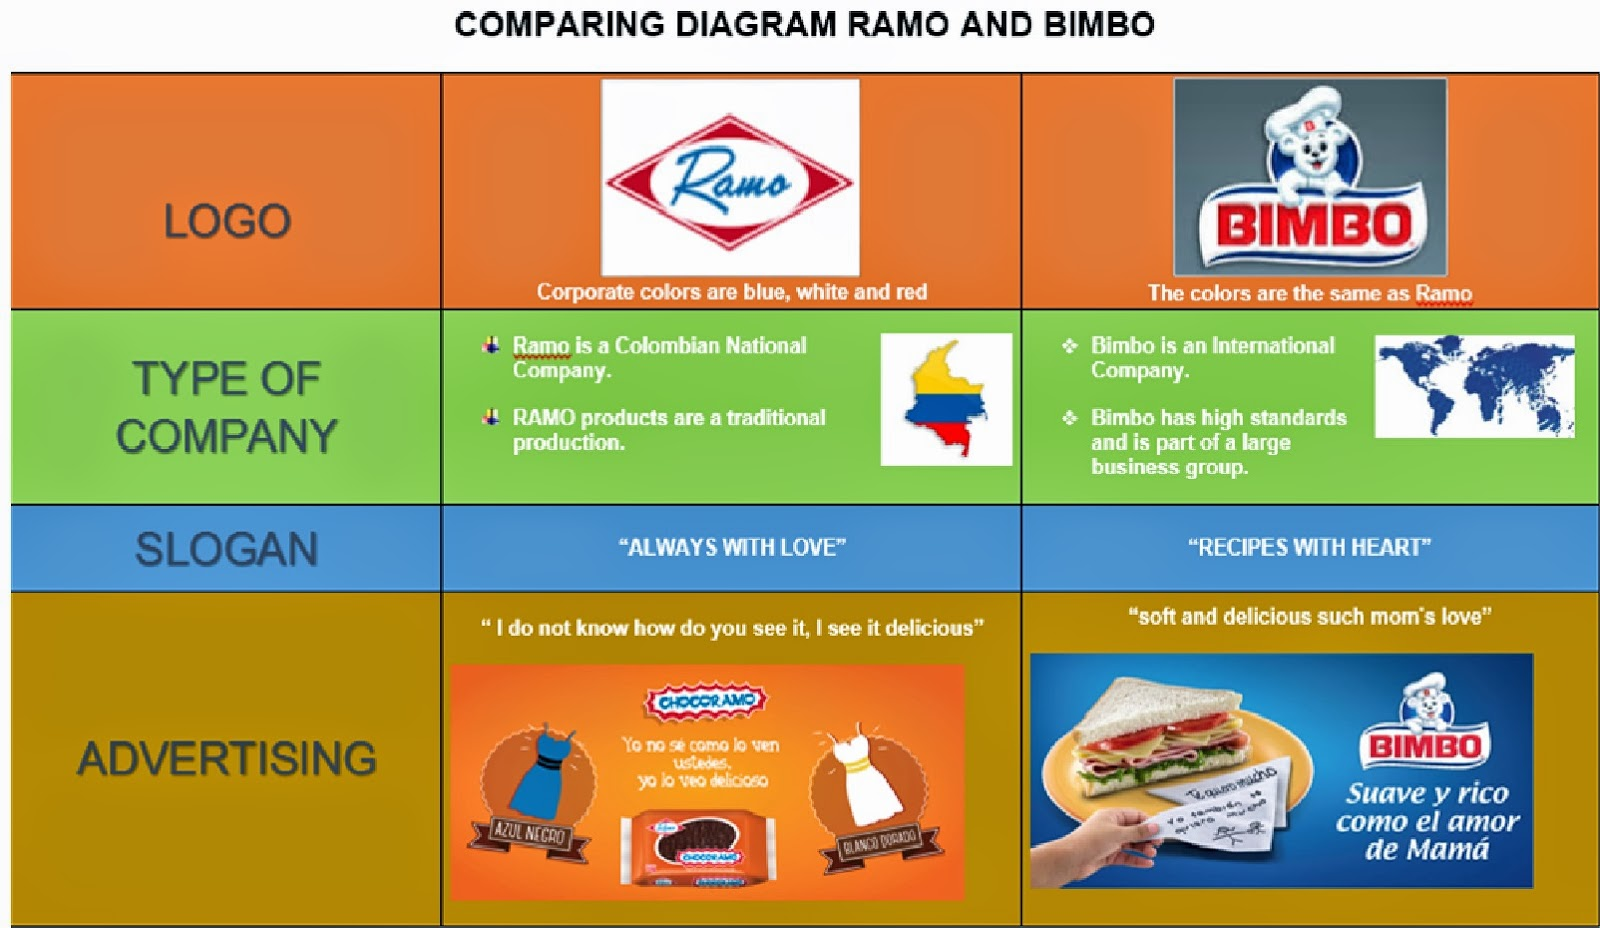 RAMO - Products Bouquet: GUIDE 3 COMPARING DIAGRAM RAMO AND BIMBO